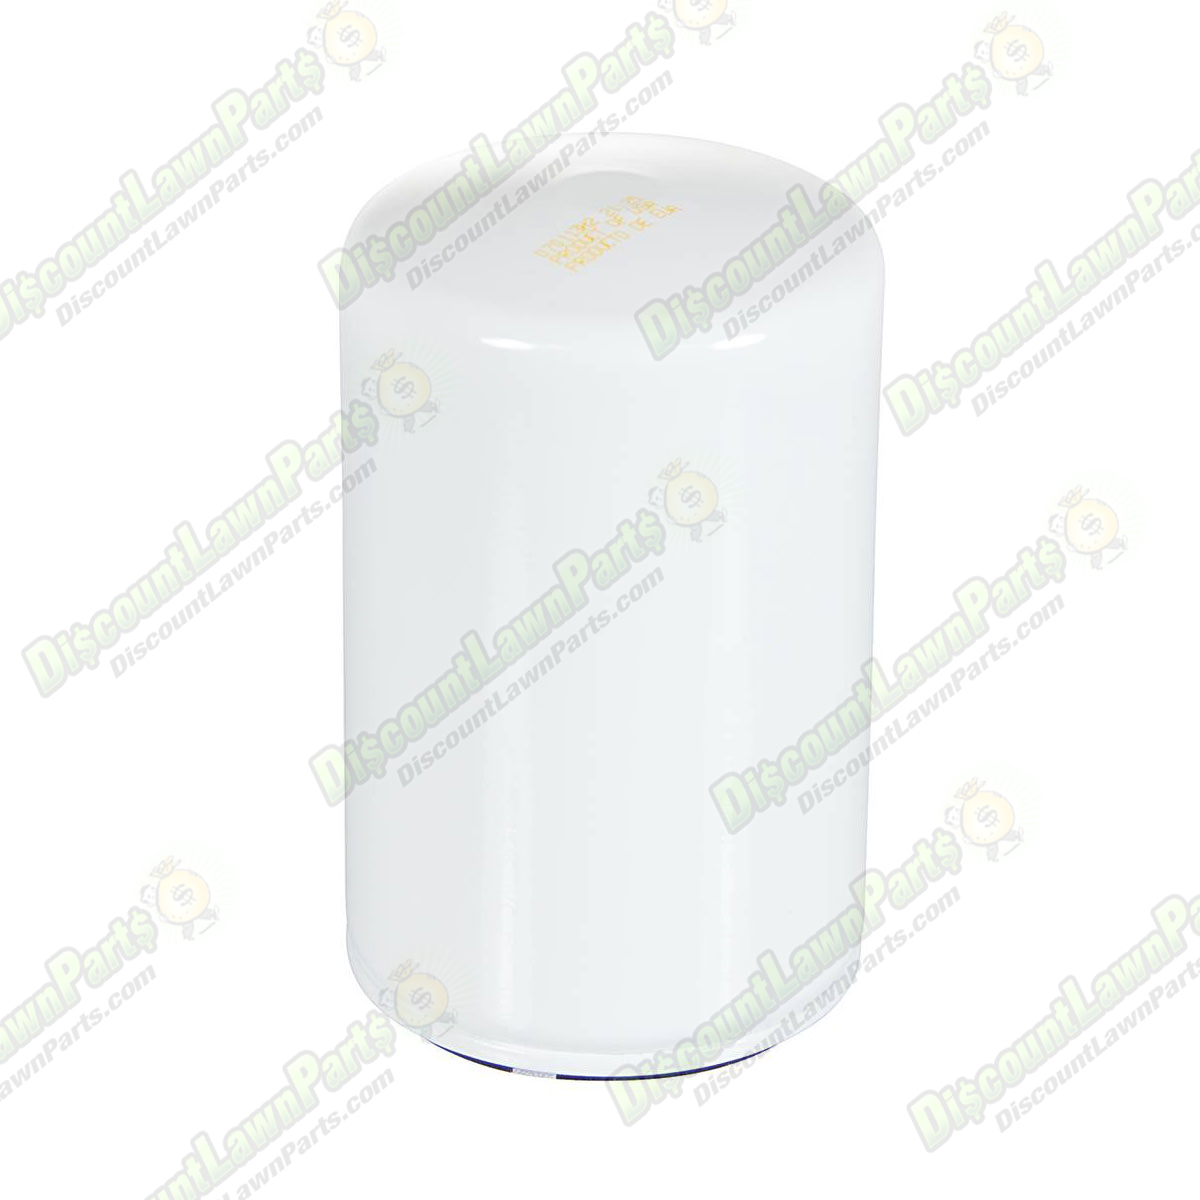 Fuel Filter Caterpillar 9y4516 Stens Home Filters